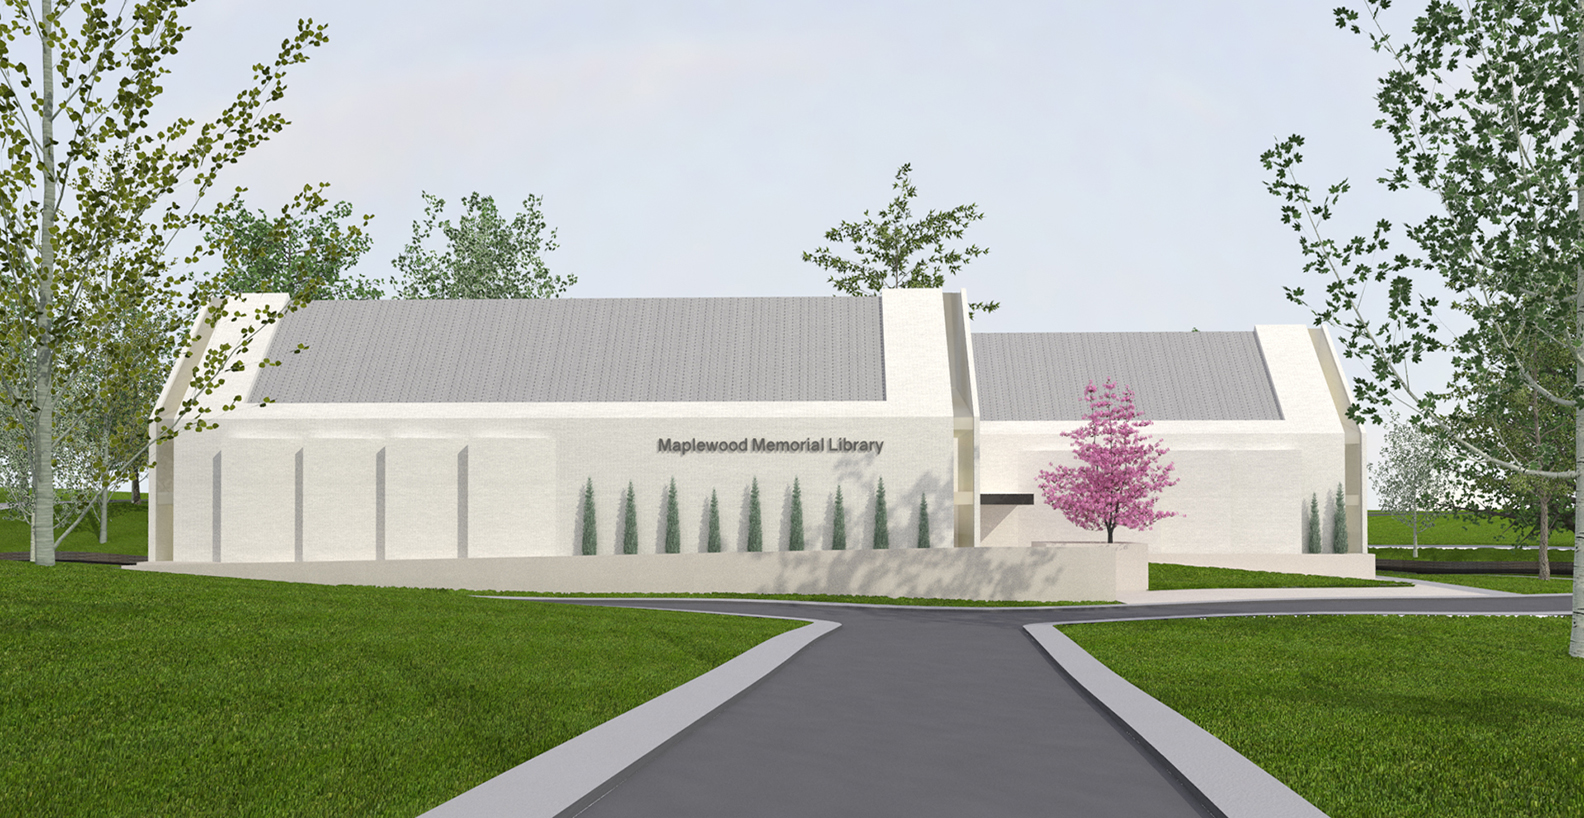 Luay Bahoora Architects - Maplewood Memorial Library RFQ Concept